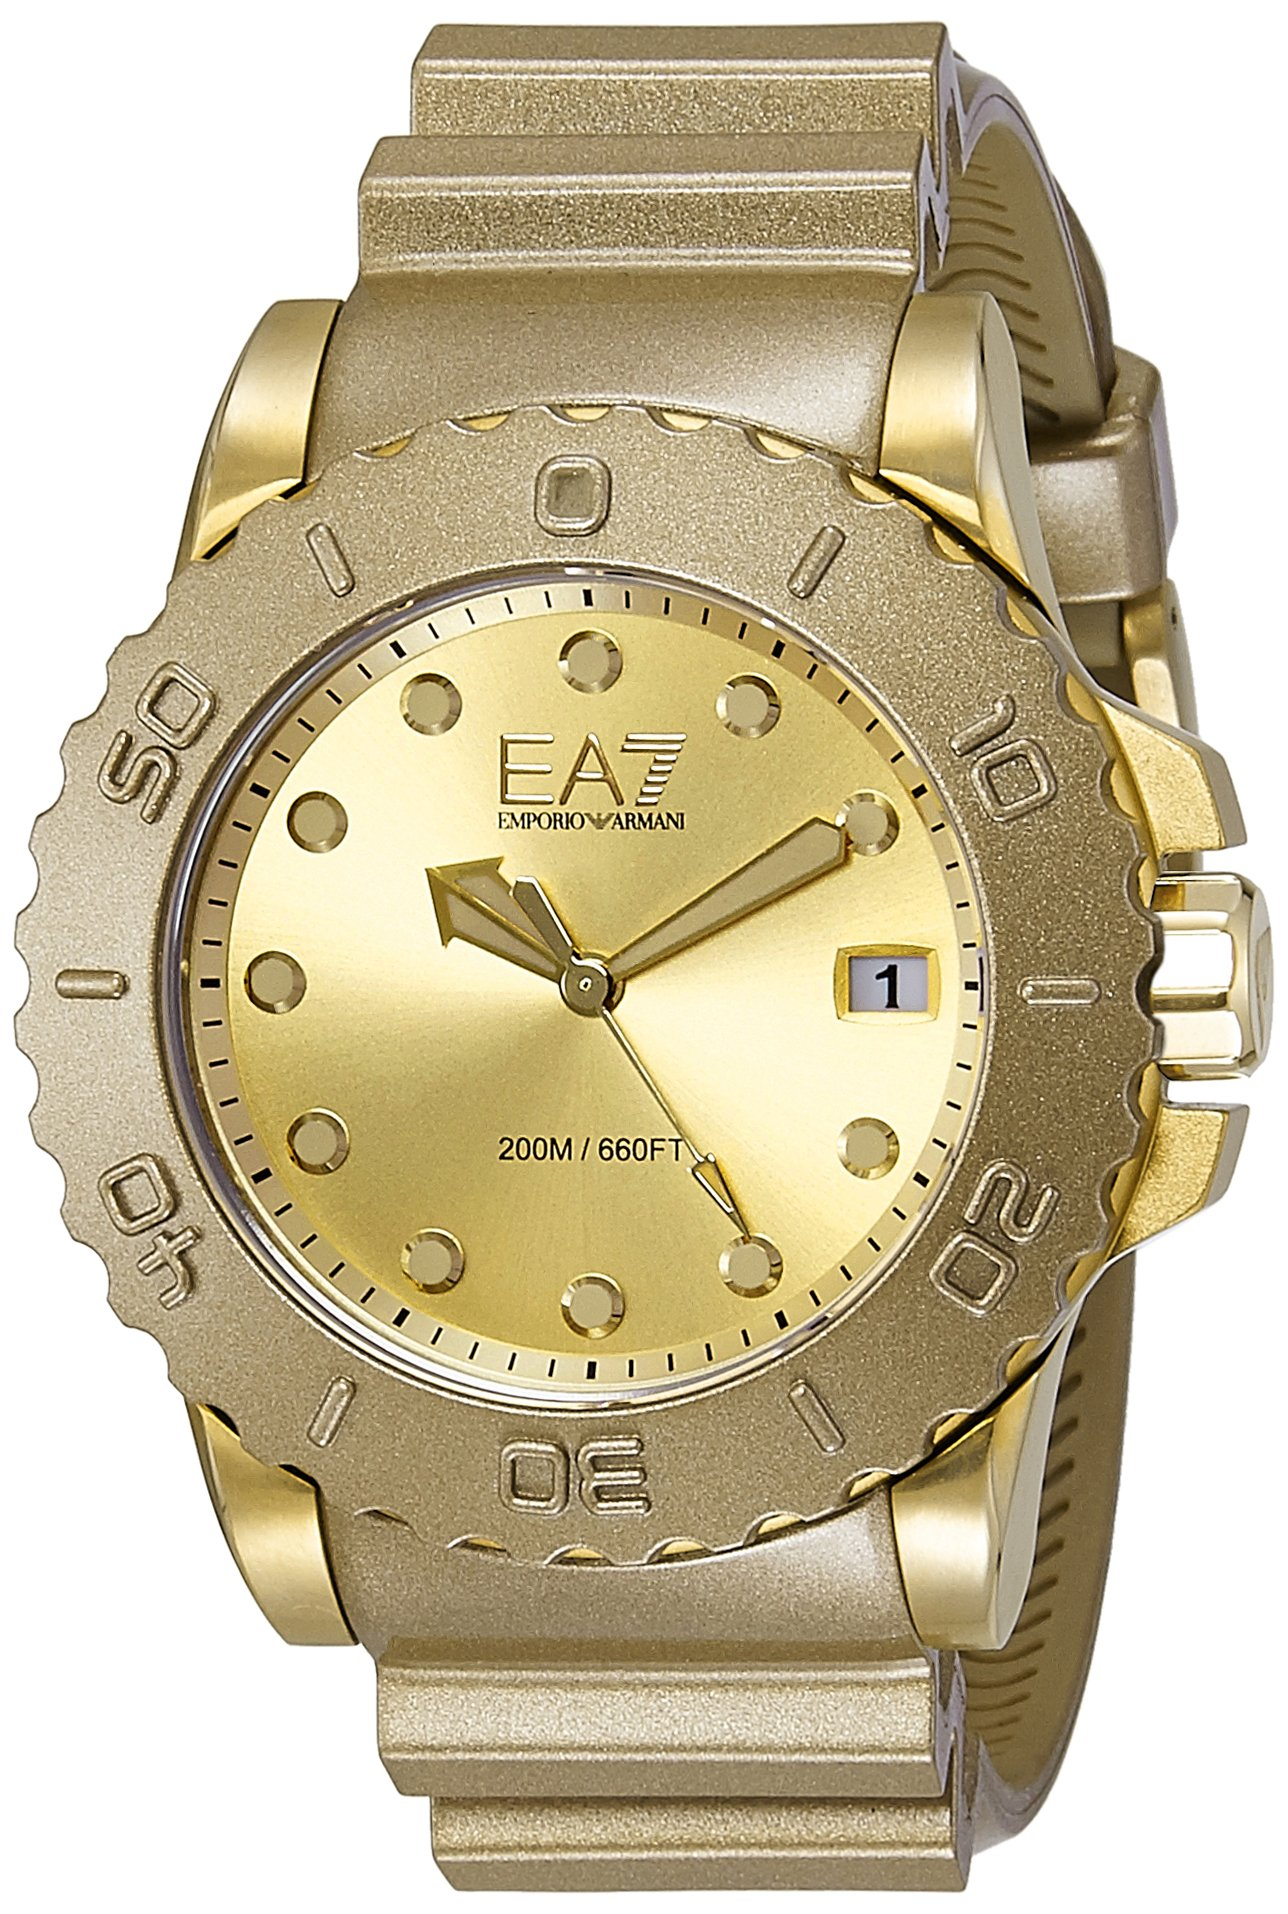 Emporio Armani Wave Analog Gold Dial Men's Watch – AR6084